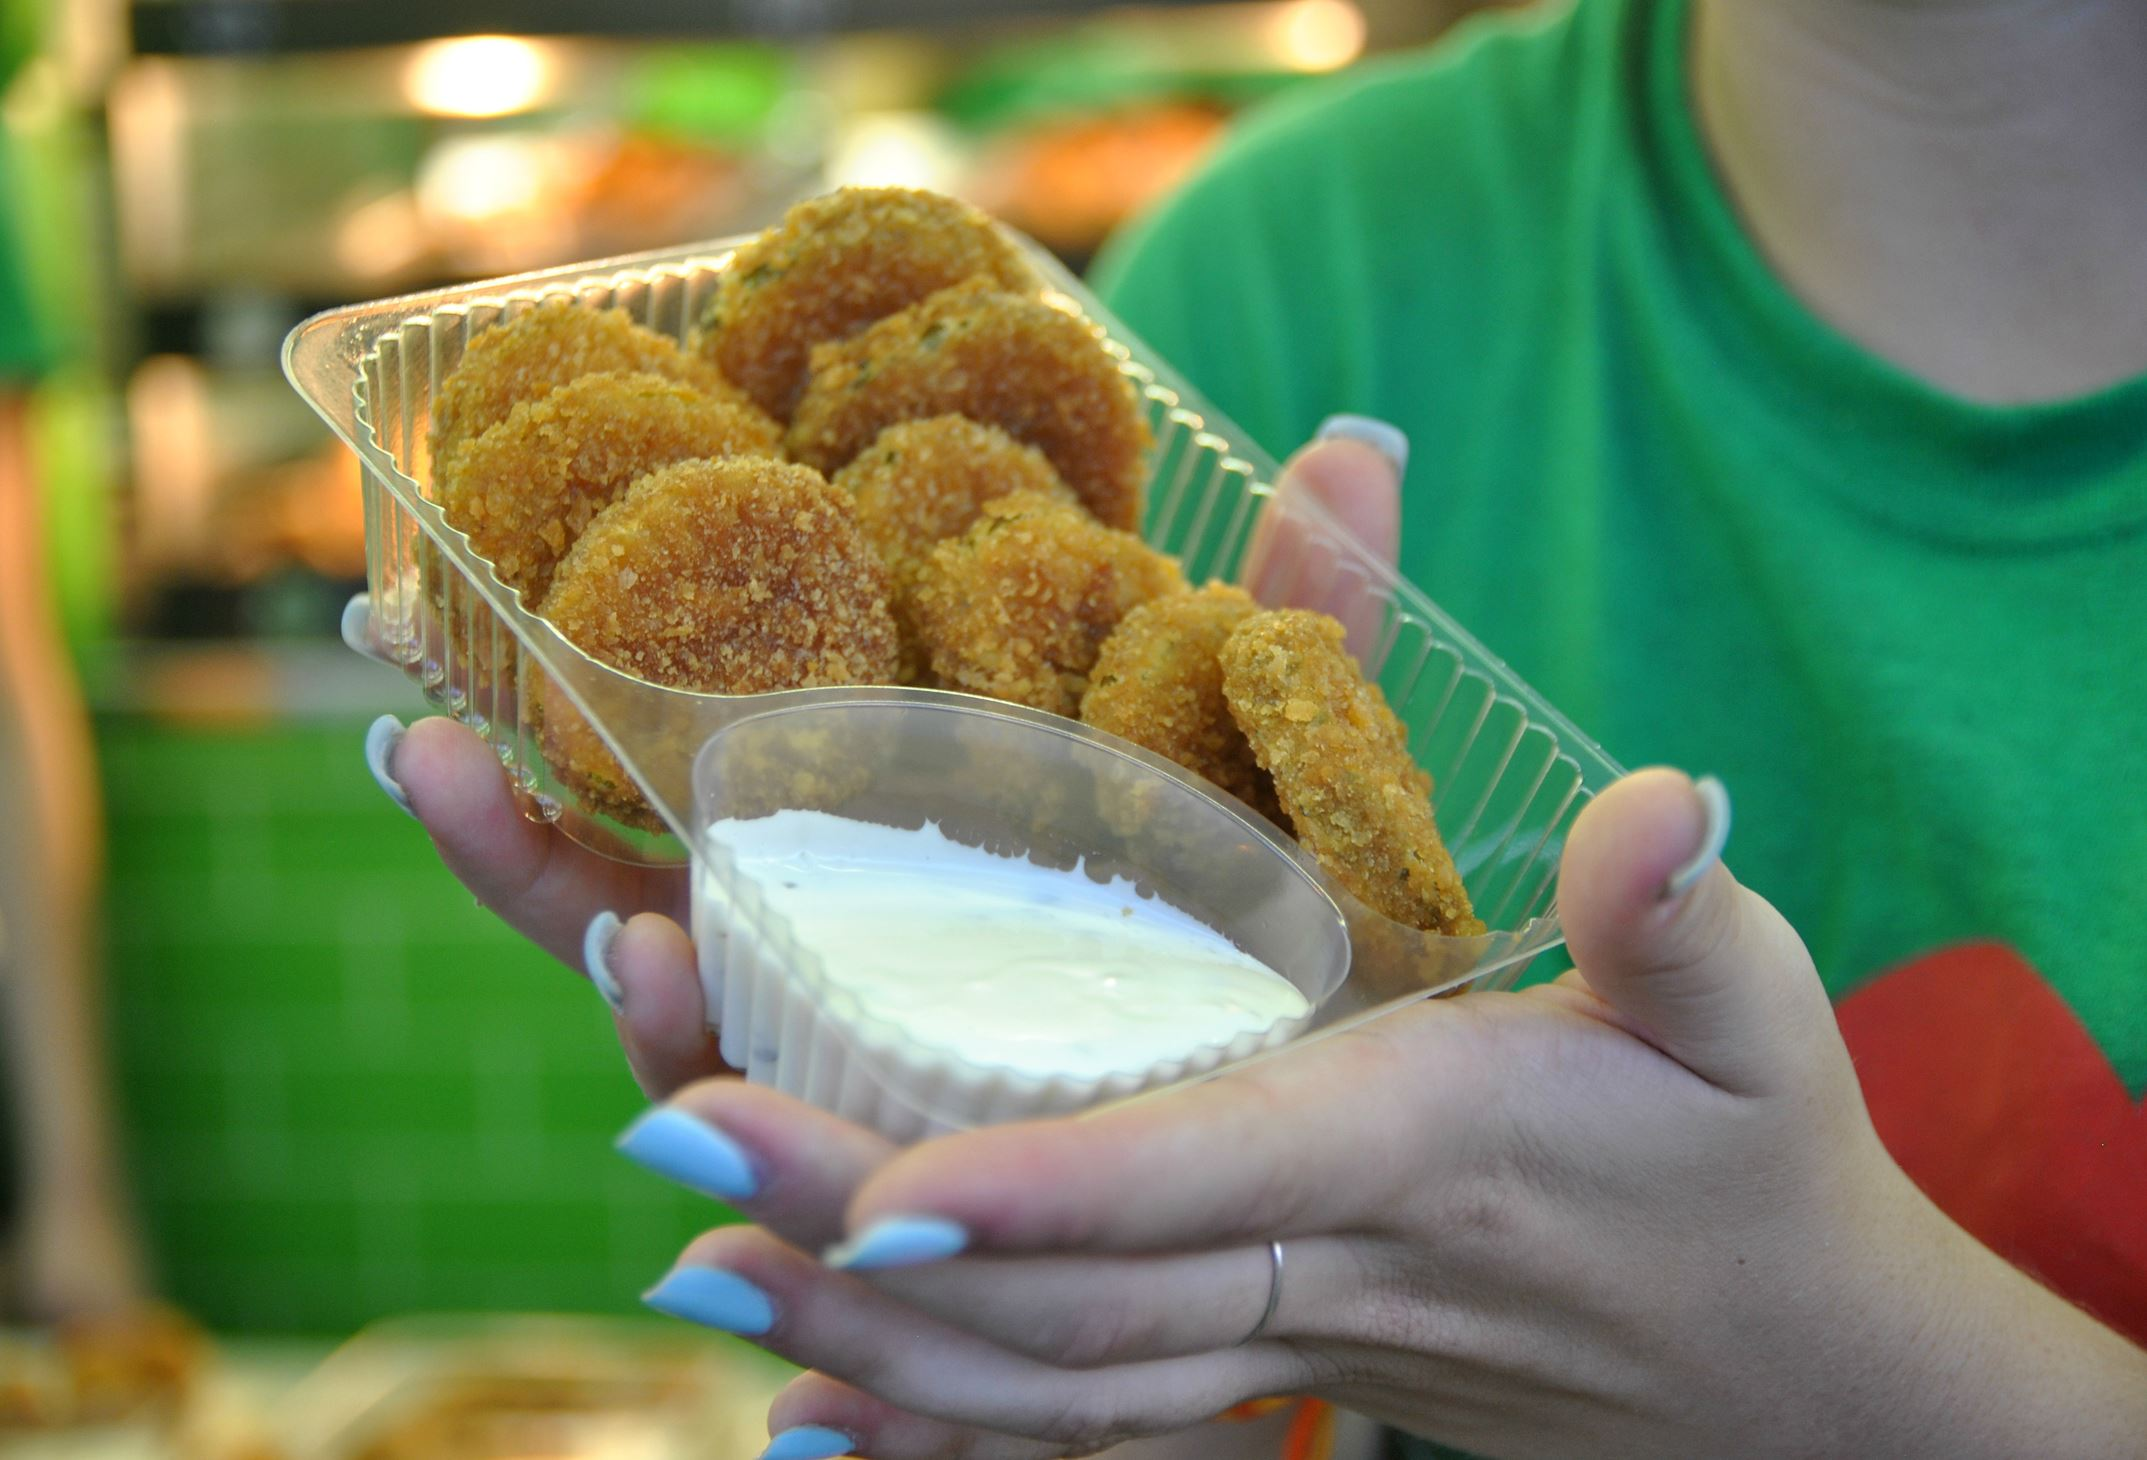 The huge Minnesota State Fair is big on decadent food creations